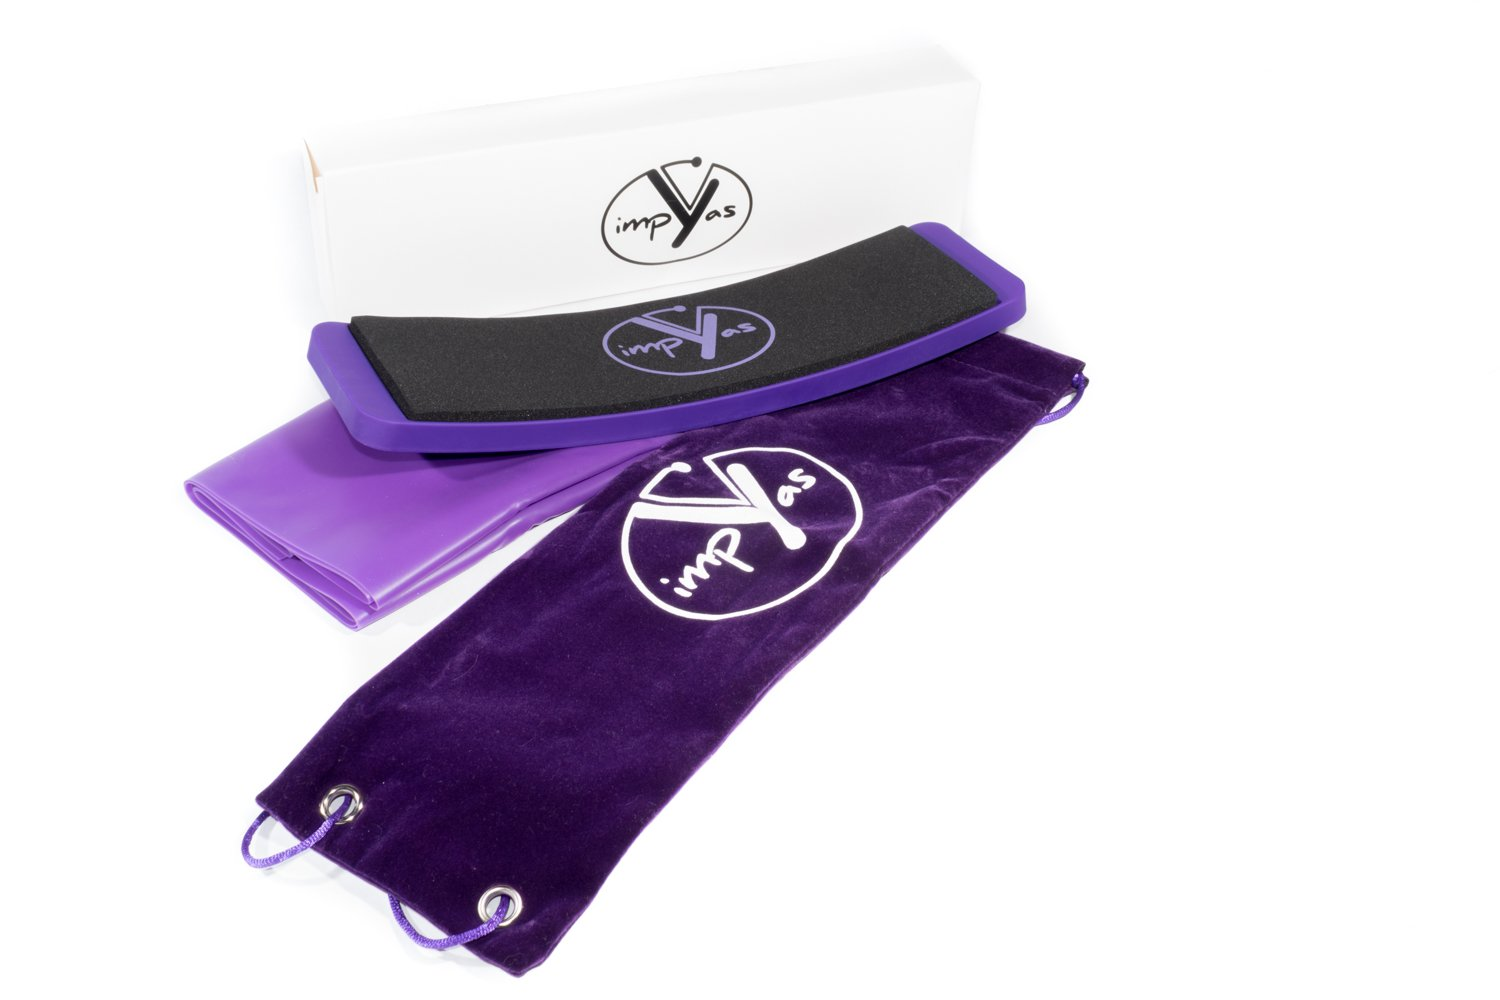 Turn Board - Excellent For Improving Your Pirouettes and Balance, Premium Box with Resistance Band and Carry Bag included, Perfect for Turning Improvement Techniques by Impyas